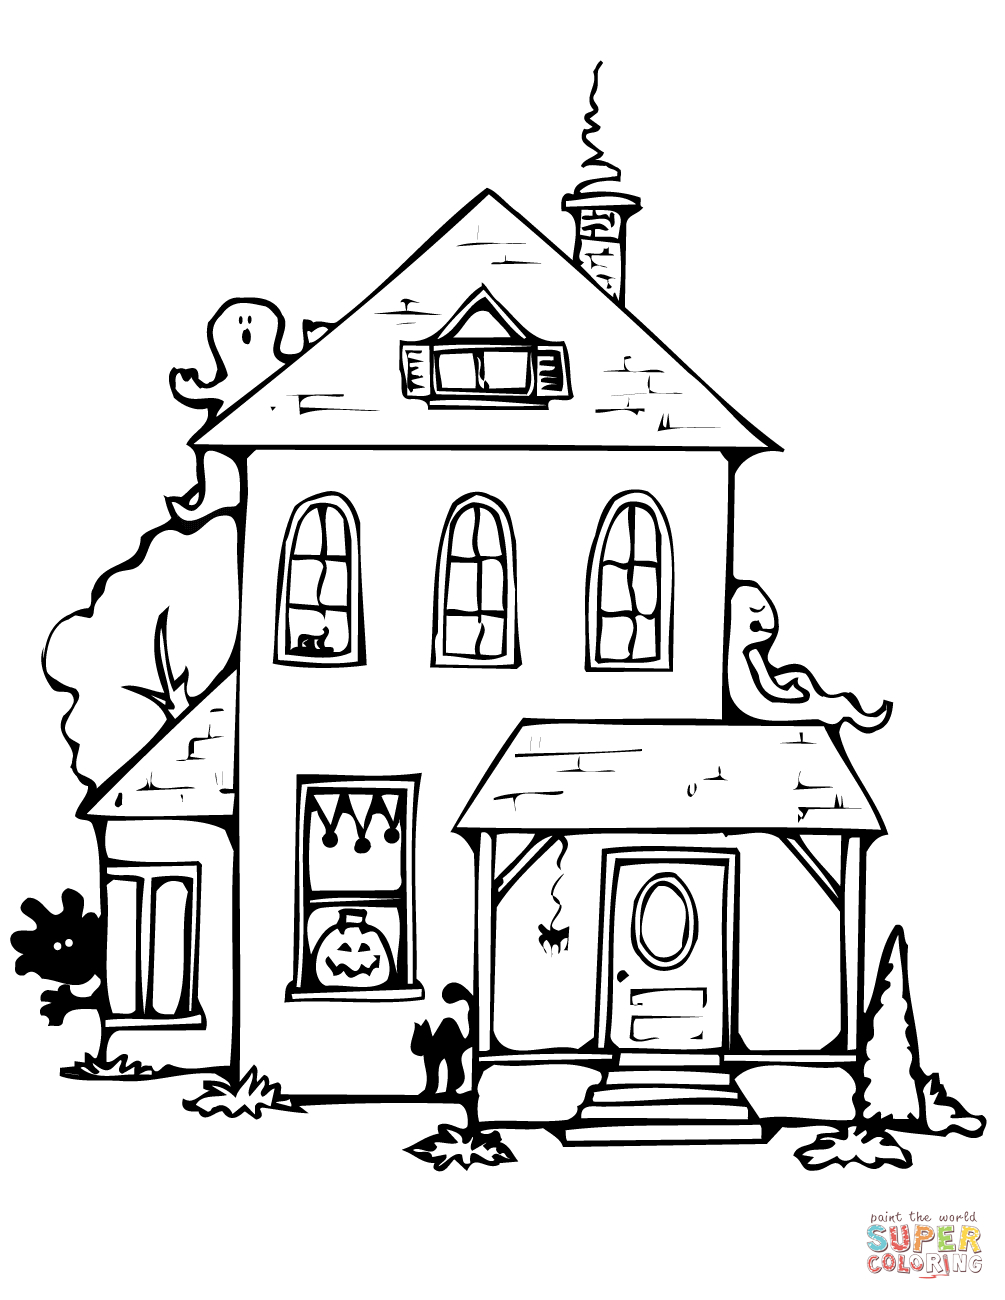 25+ Awesome Image of Haunted House Coloring Pages